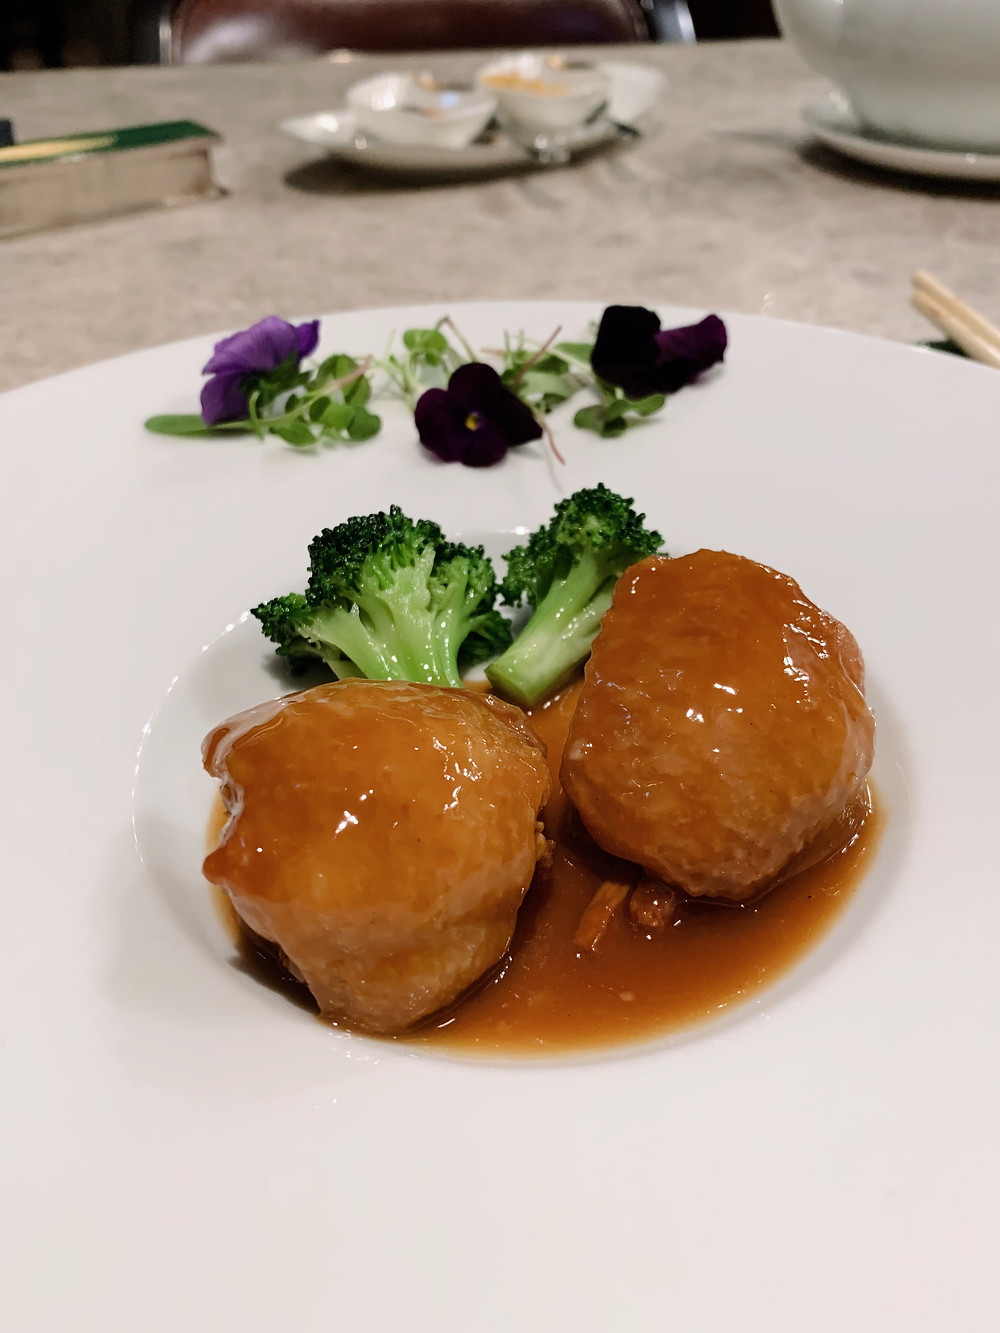 Boneless chicken wings at Ying Jee Club Restaurant